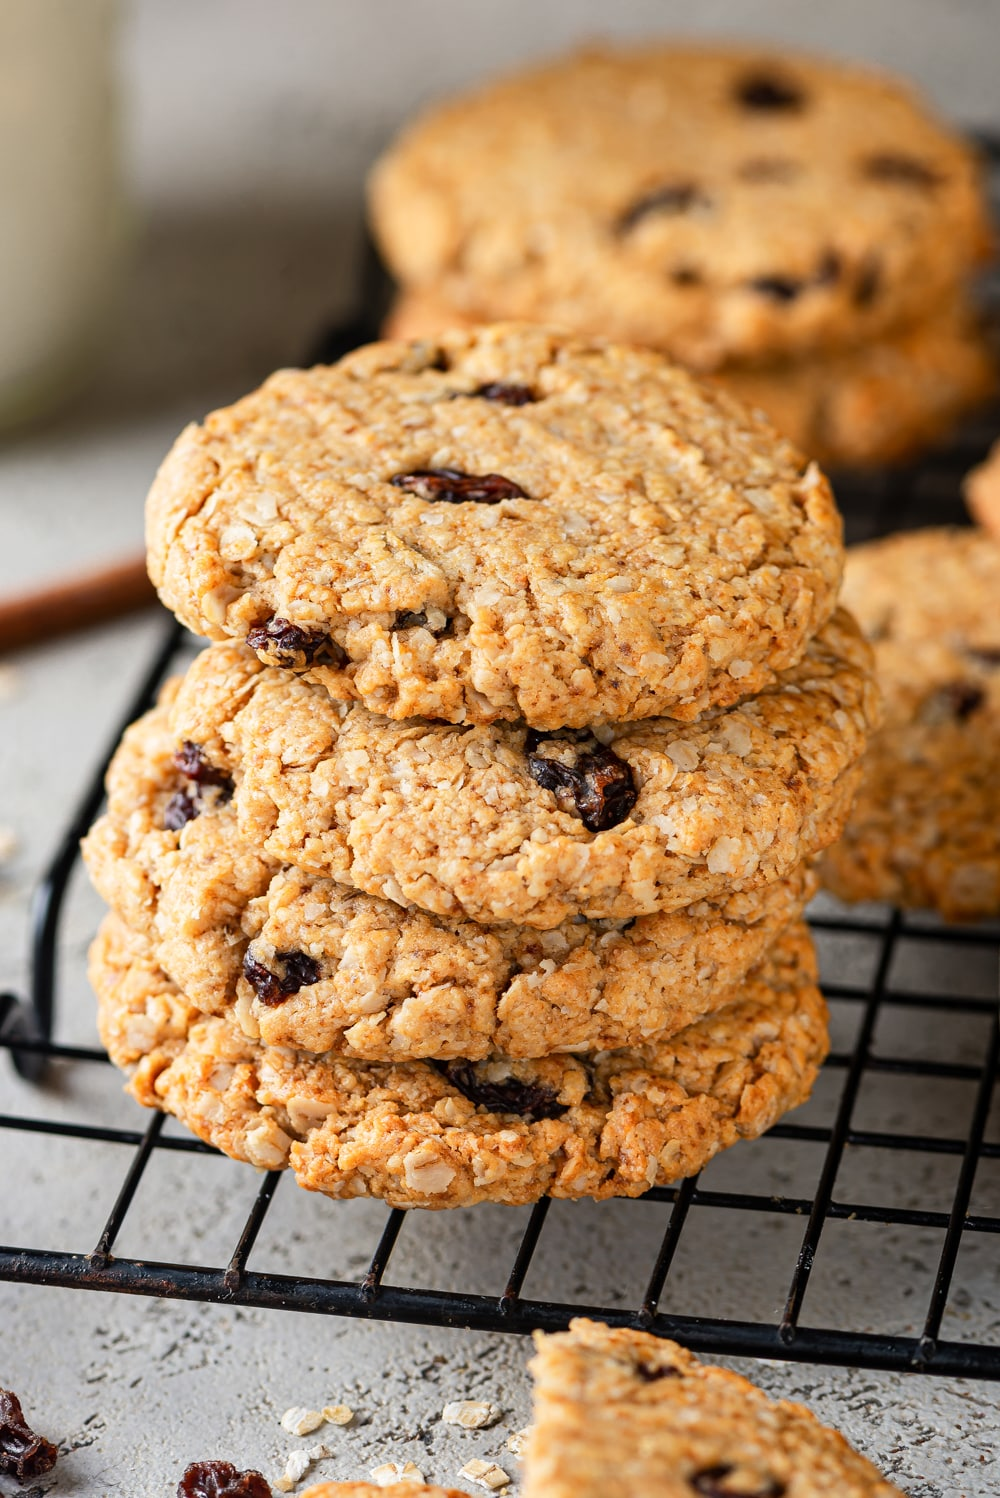 A stack of four vegan oatmeal raisin cookies on top of a black wire rack. A smaller stack of two cookies is behind the stack of four and one cookie is in the middle of the two stacks, slightly to the right. The wire rack is on a grey counter.